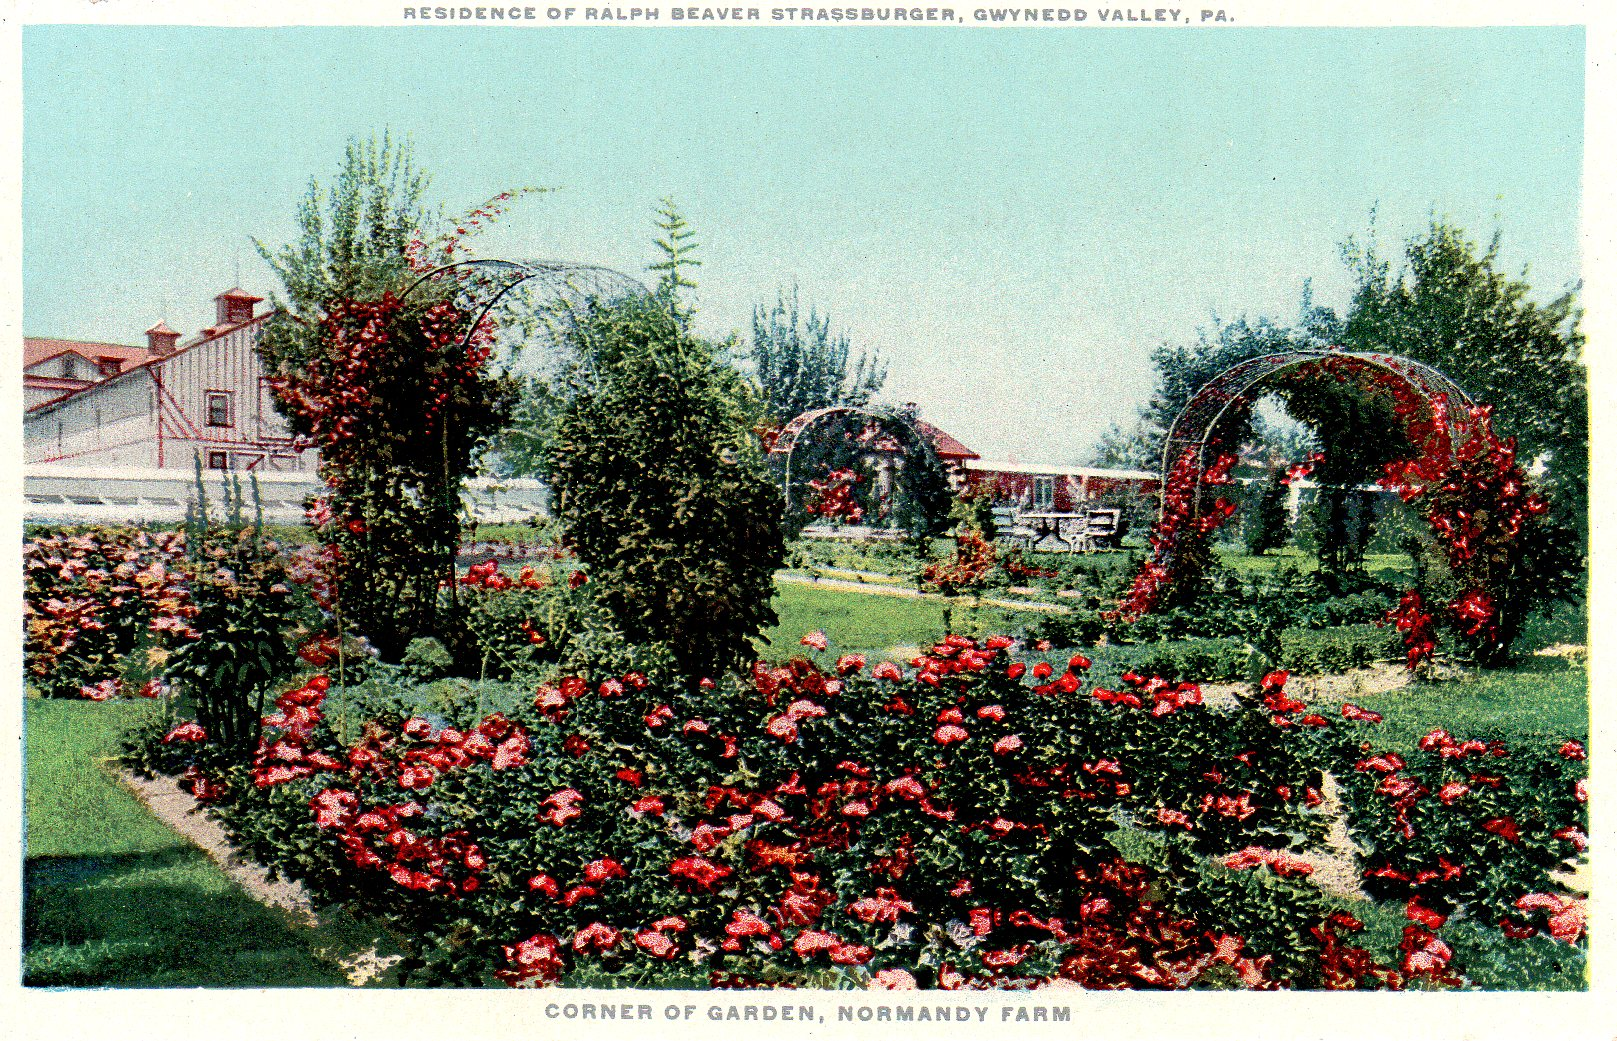 Post Card Collection (E Simon)_2682_83_Home Ralph Beaver Strassburger, Gwynedd Valley, Pa_Corner of Garden, Normandy Farm